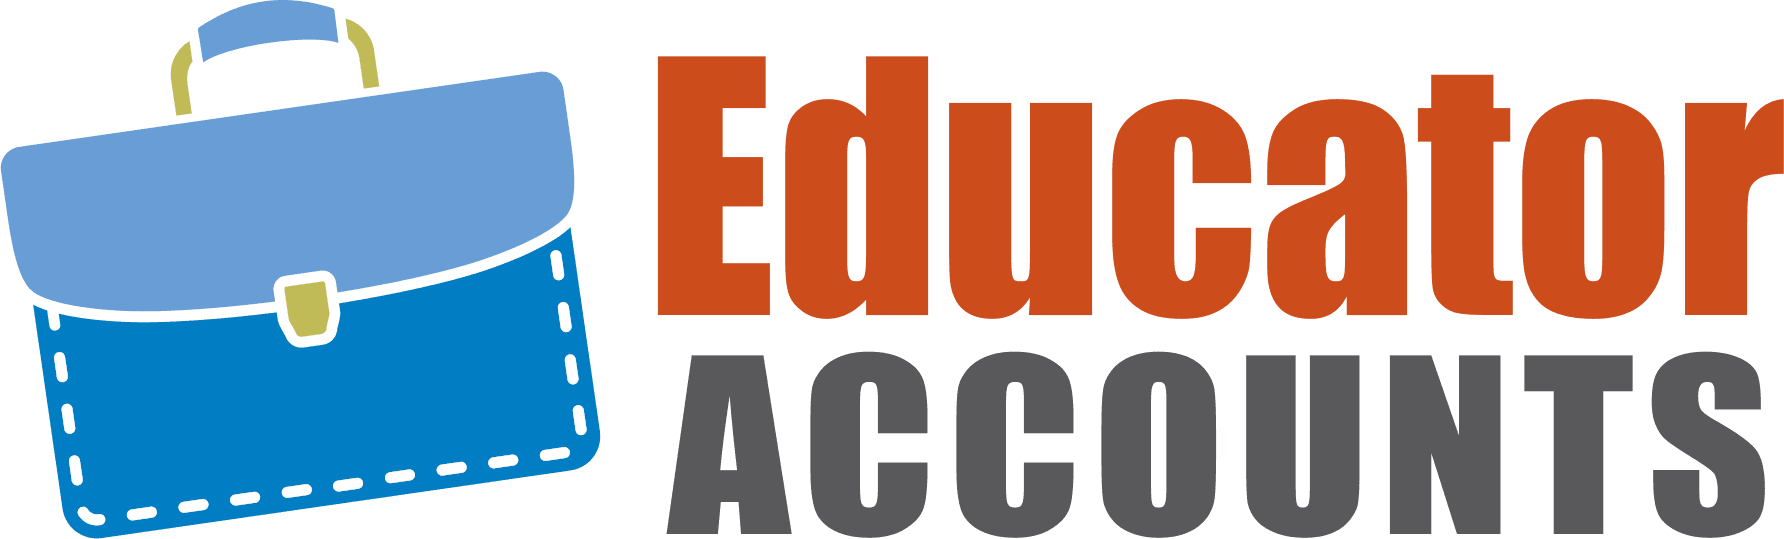 Educator Accounts logog